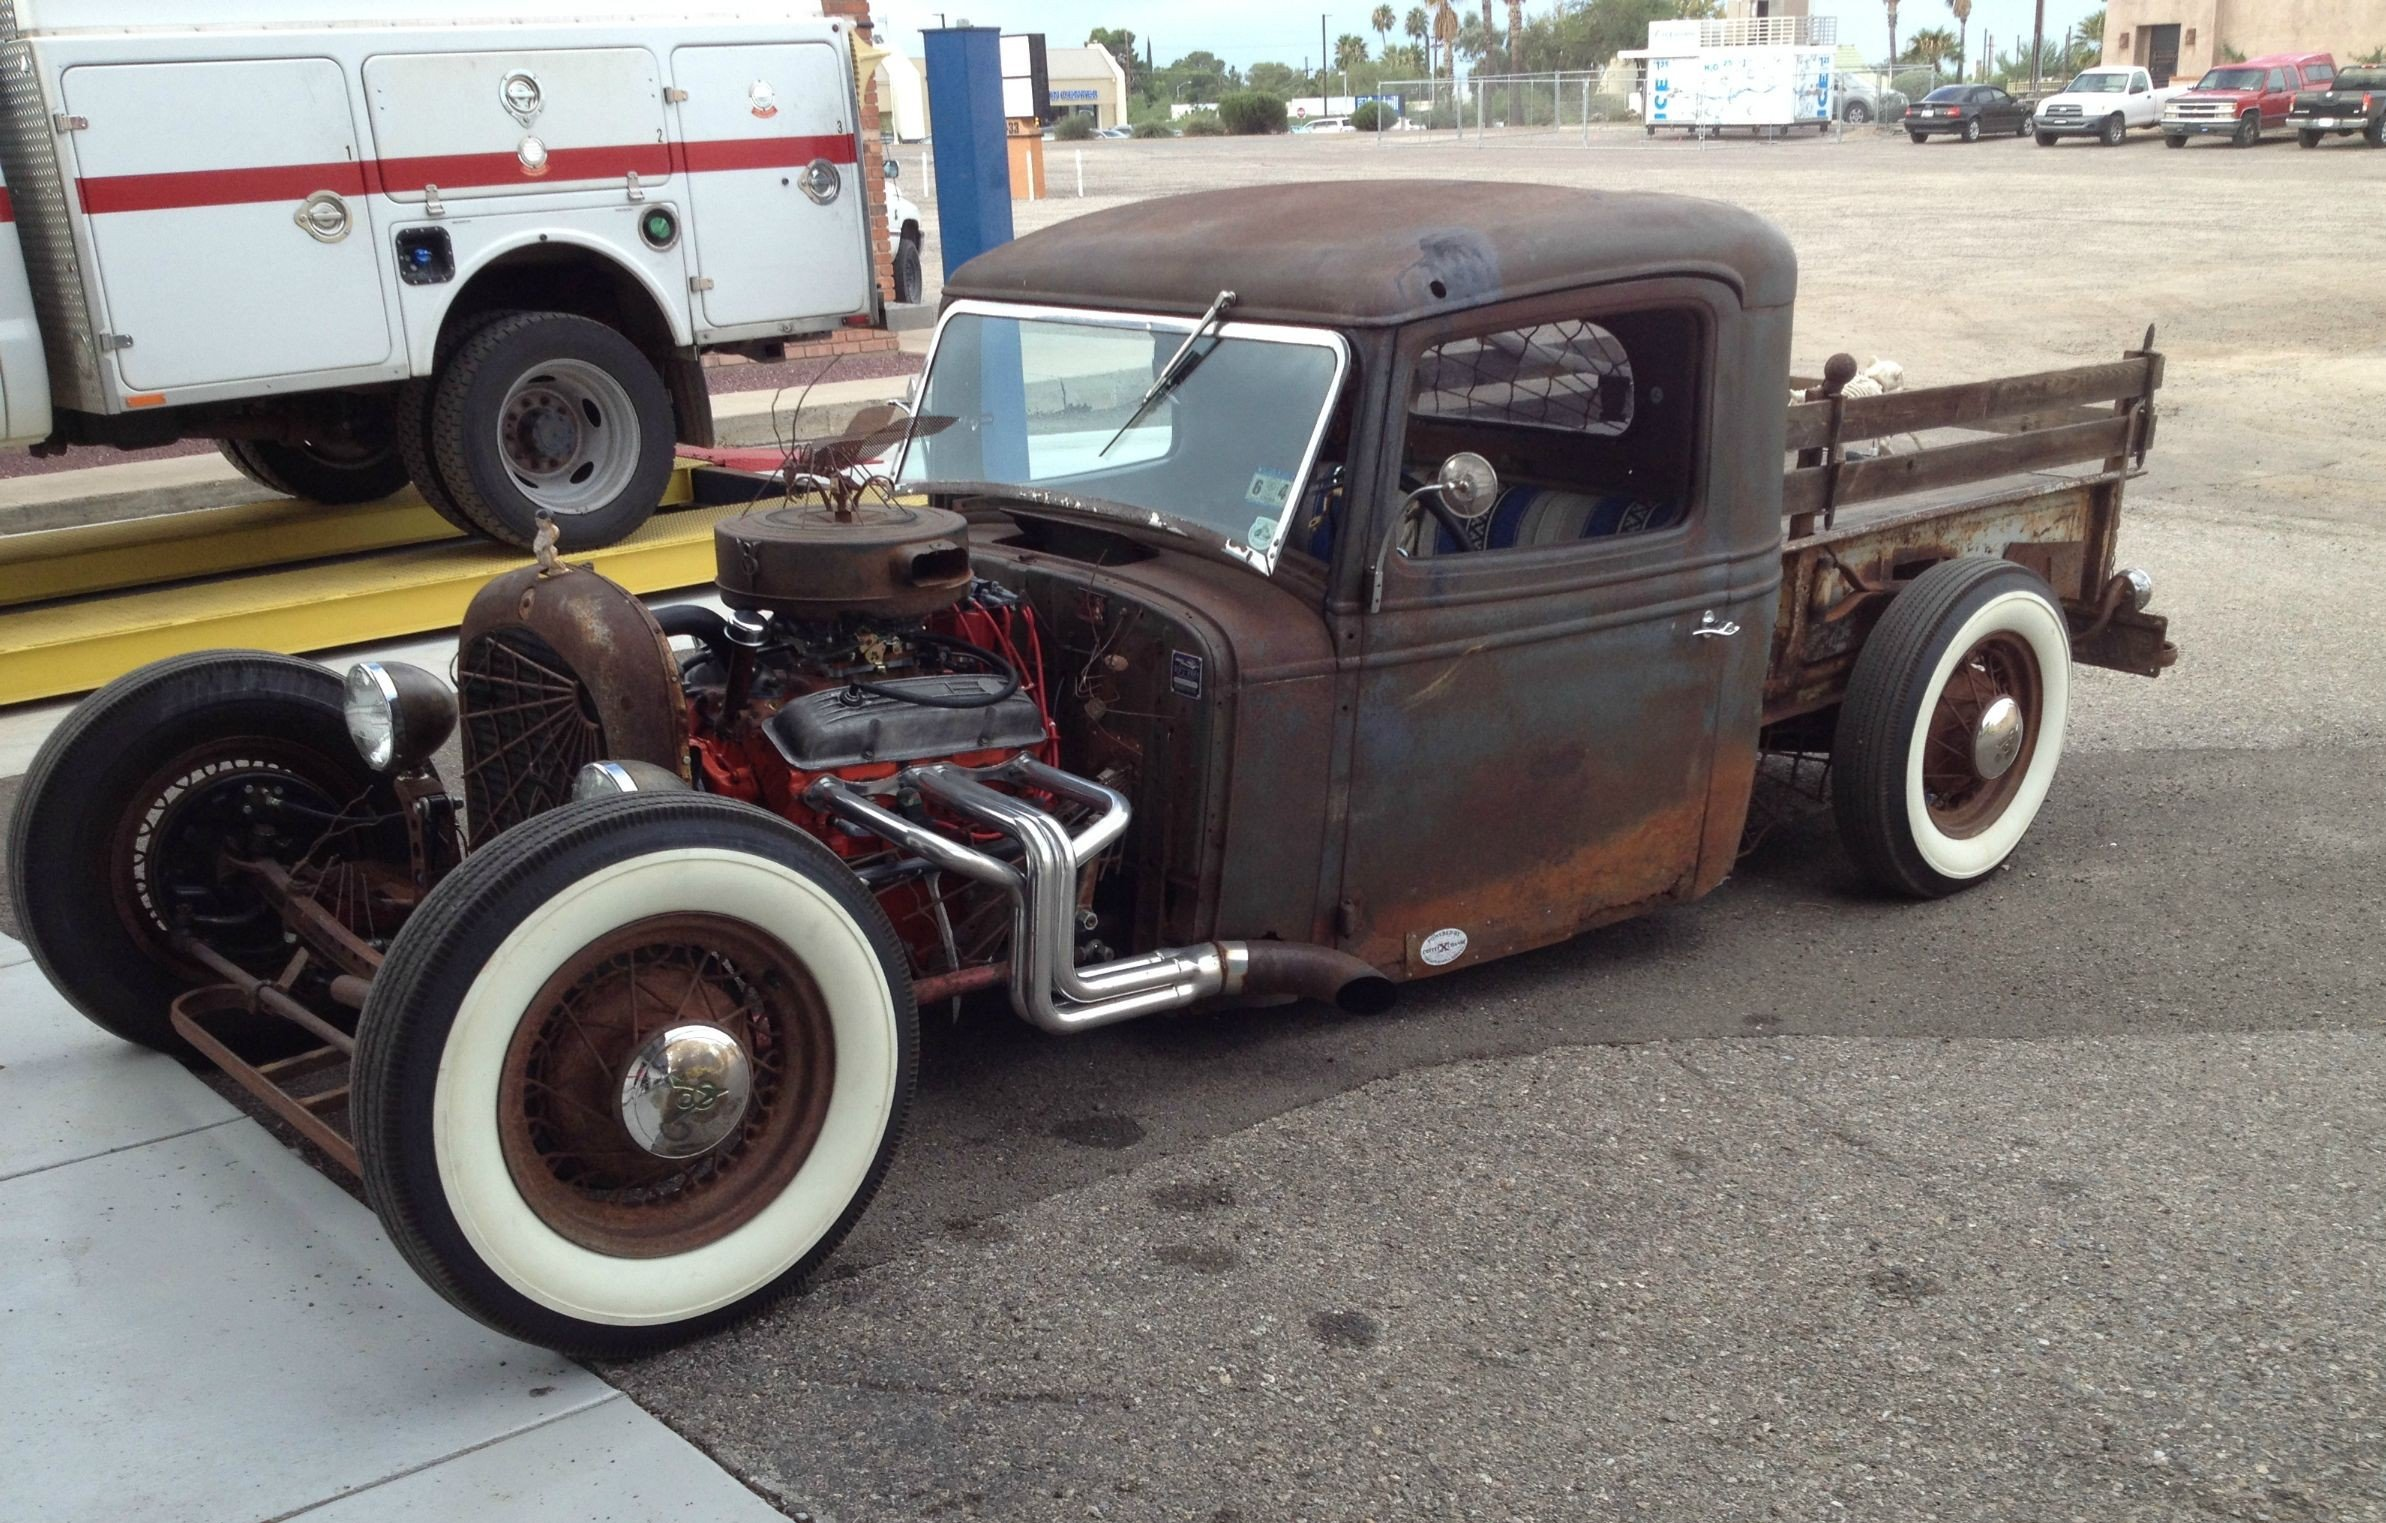 Rat Rod Saturday! '34 International with headers straight into a side dump